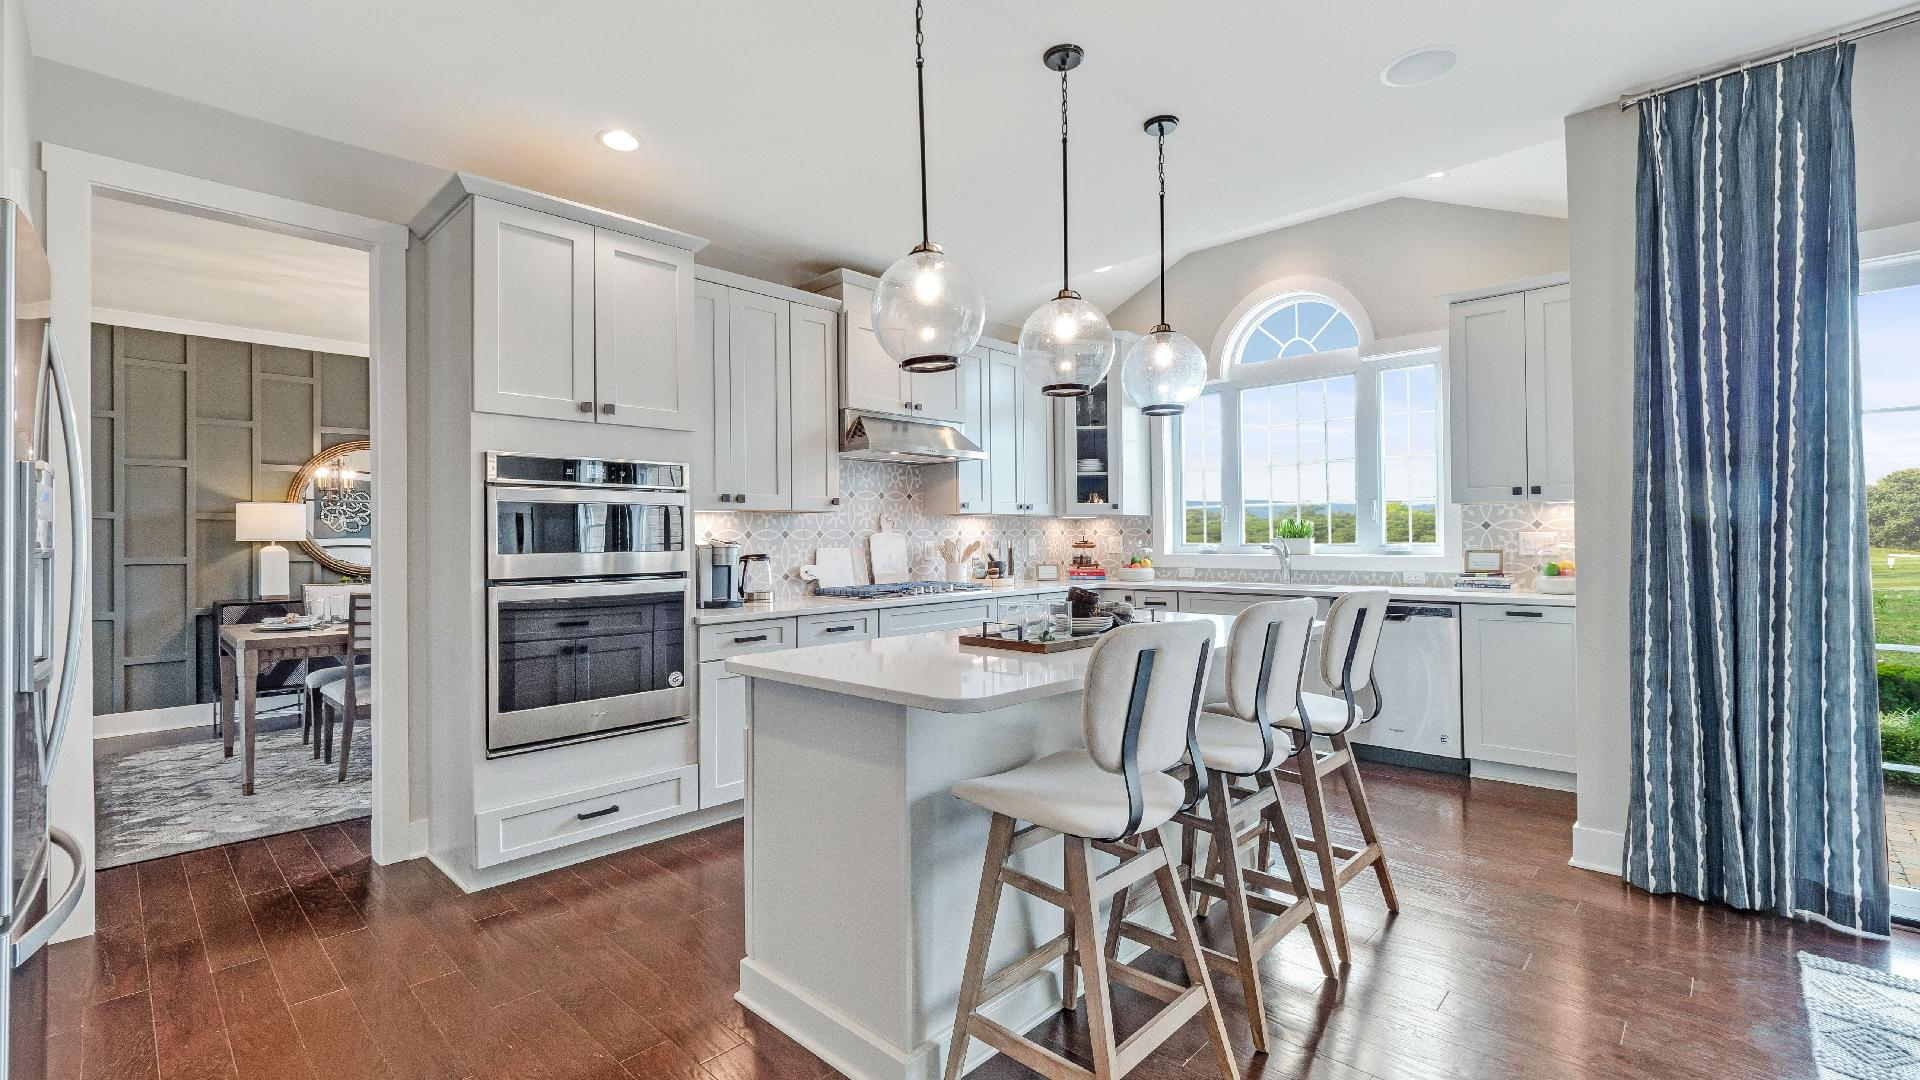 Beautiful open kitchens with center islands, granite countertops and stainless steel appliances